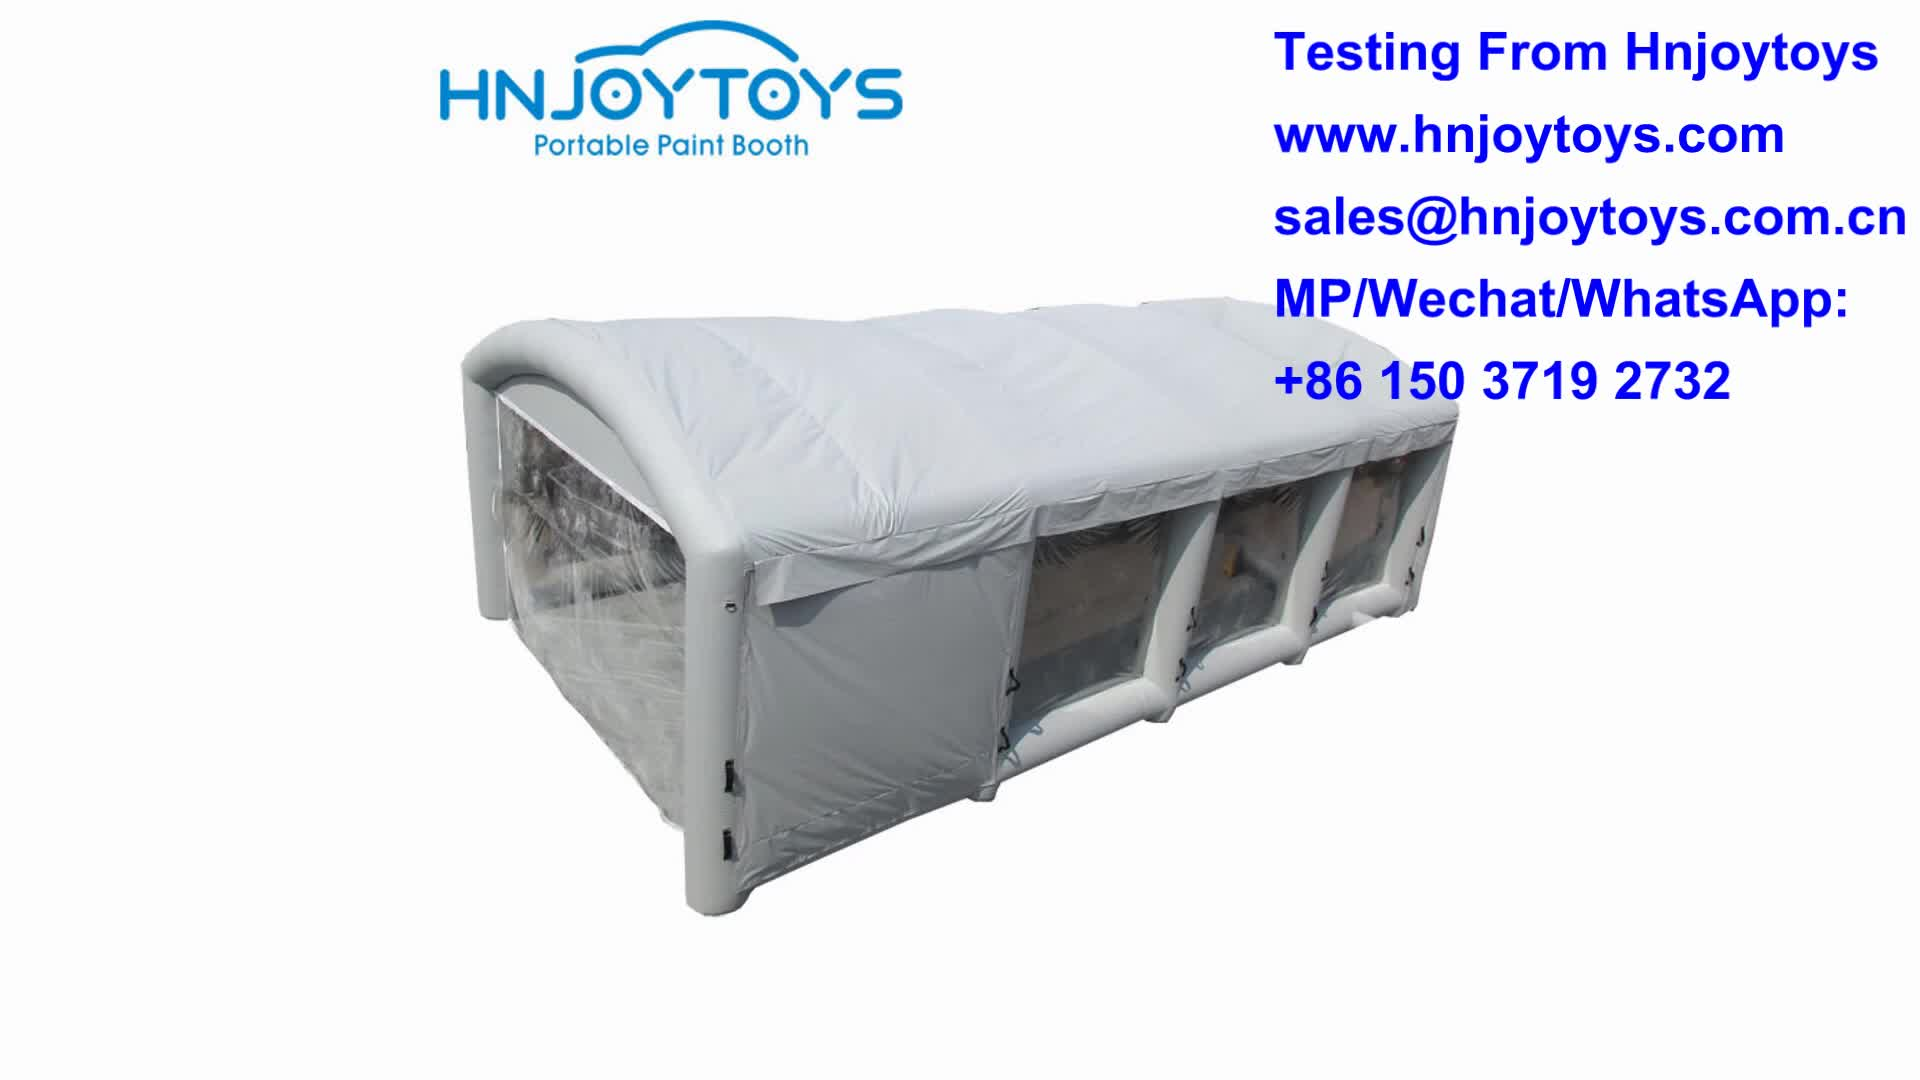 Hot sale 2019 hot sales paint booth, automotive inflatable paint booth for car painting cheaper